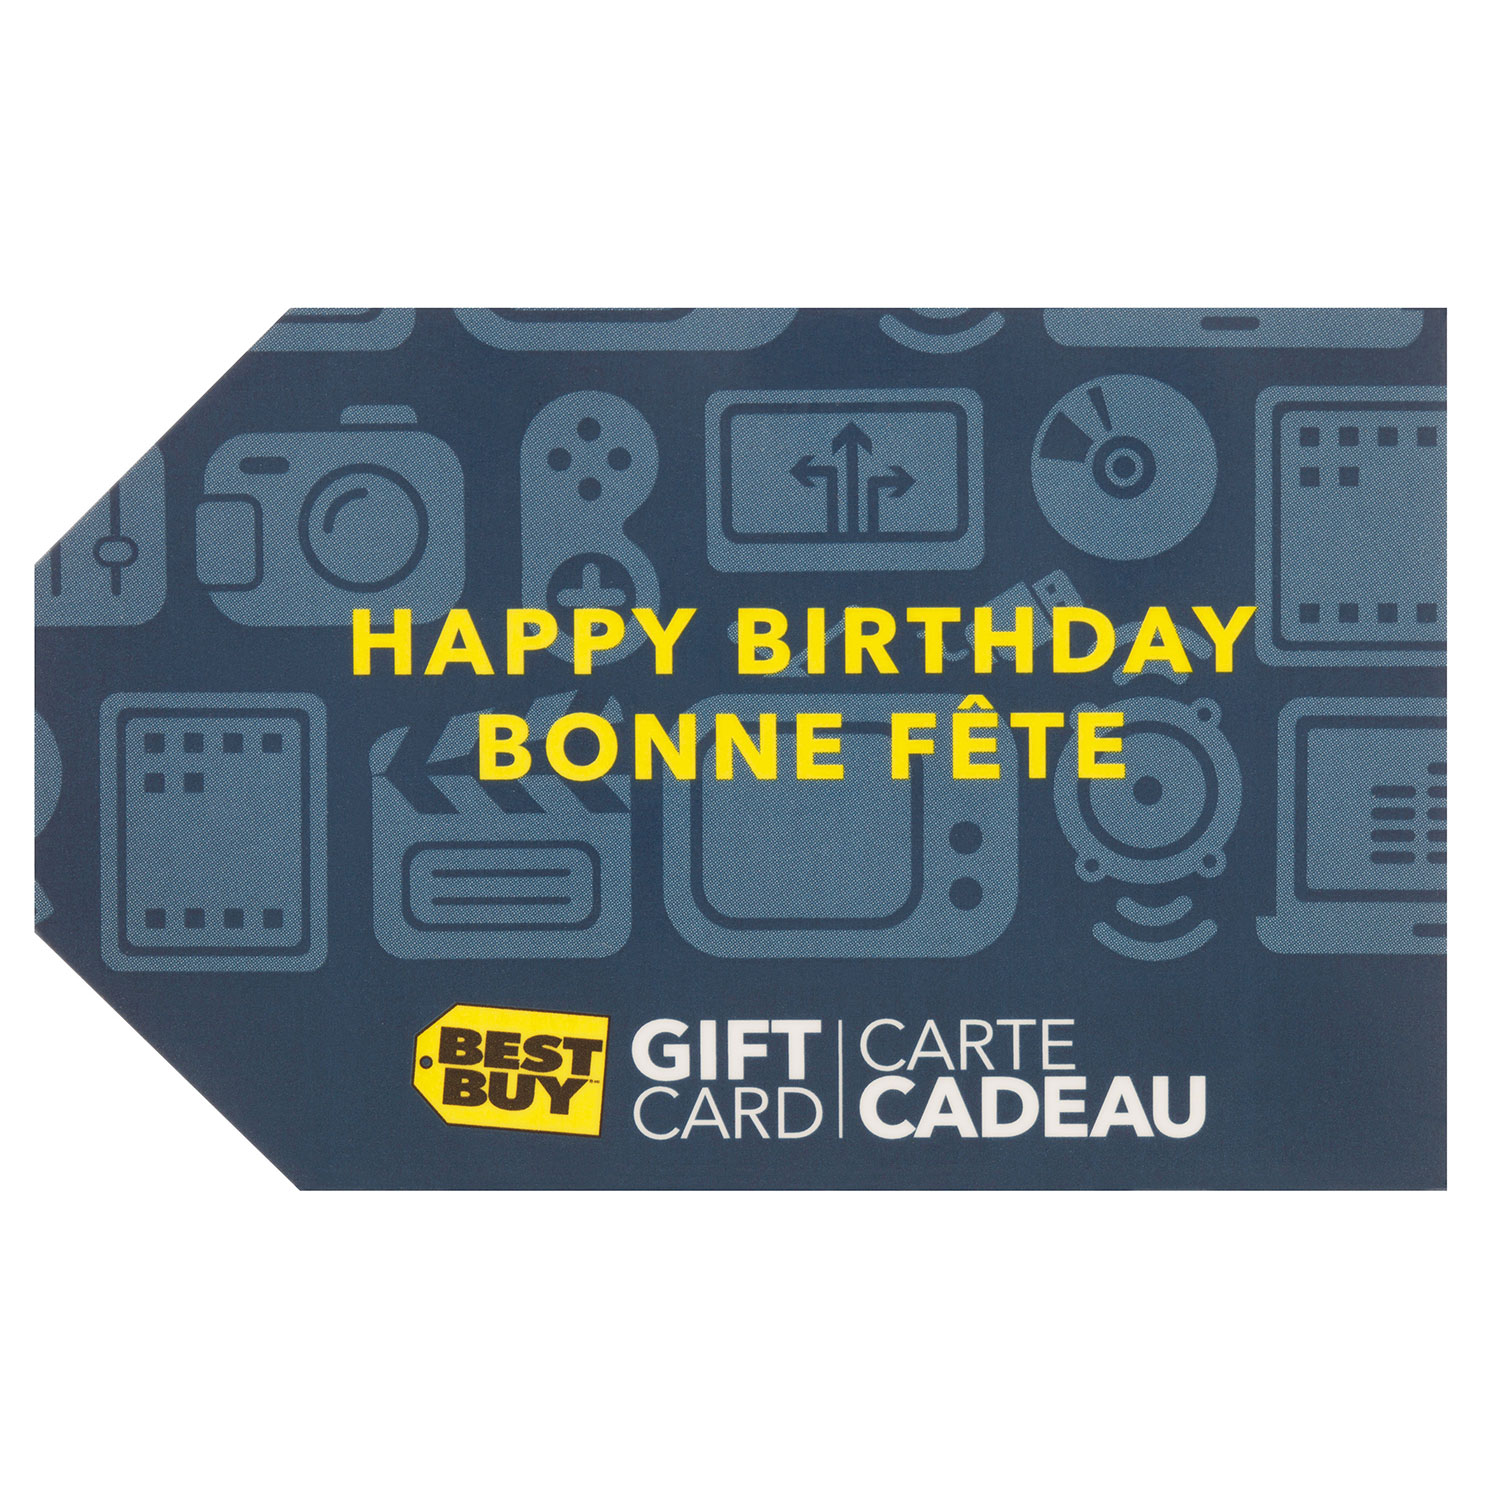 Best Buy Birthday Gift Card - $100 : Best Buy Gift Cards - Best ...